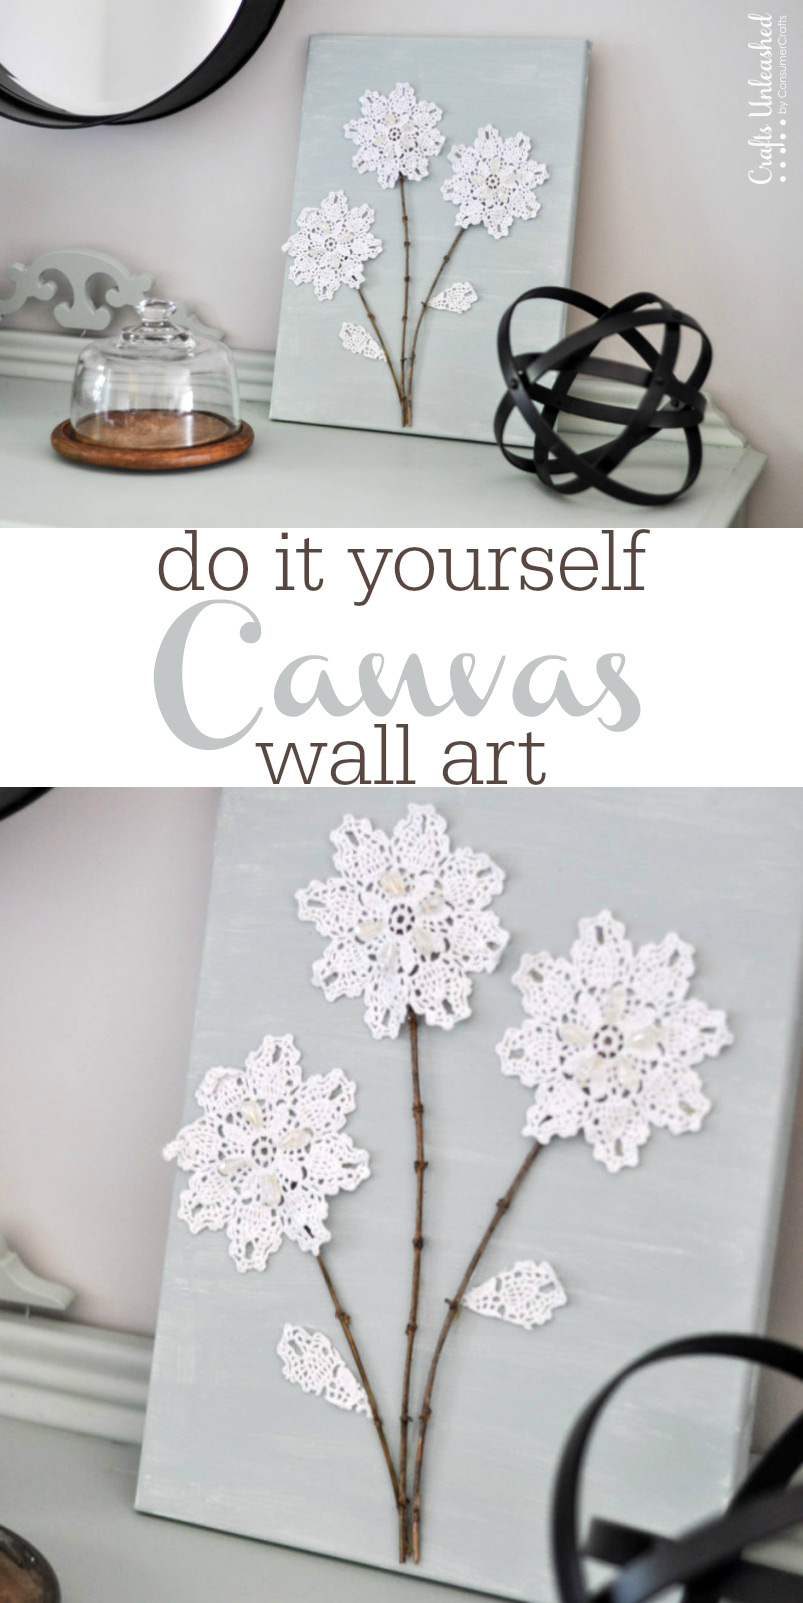 Wall Art Canvas Shabby Chic : Shabby chic diy canvas wall art craftsmile